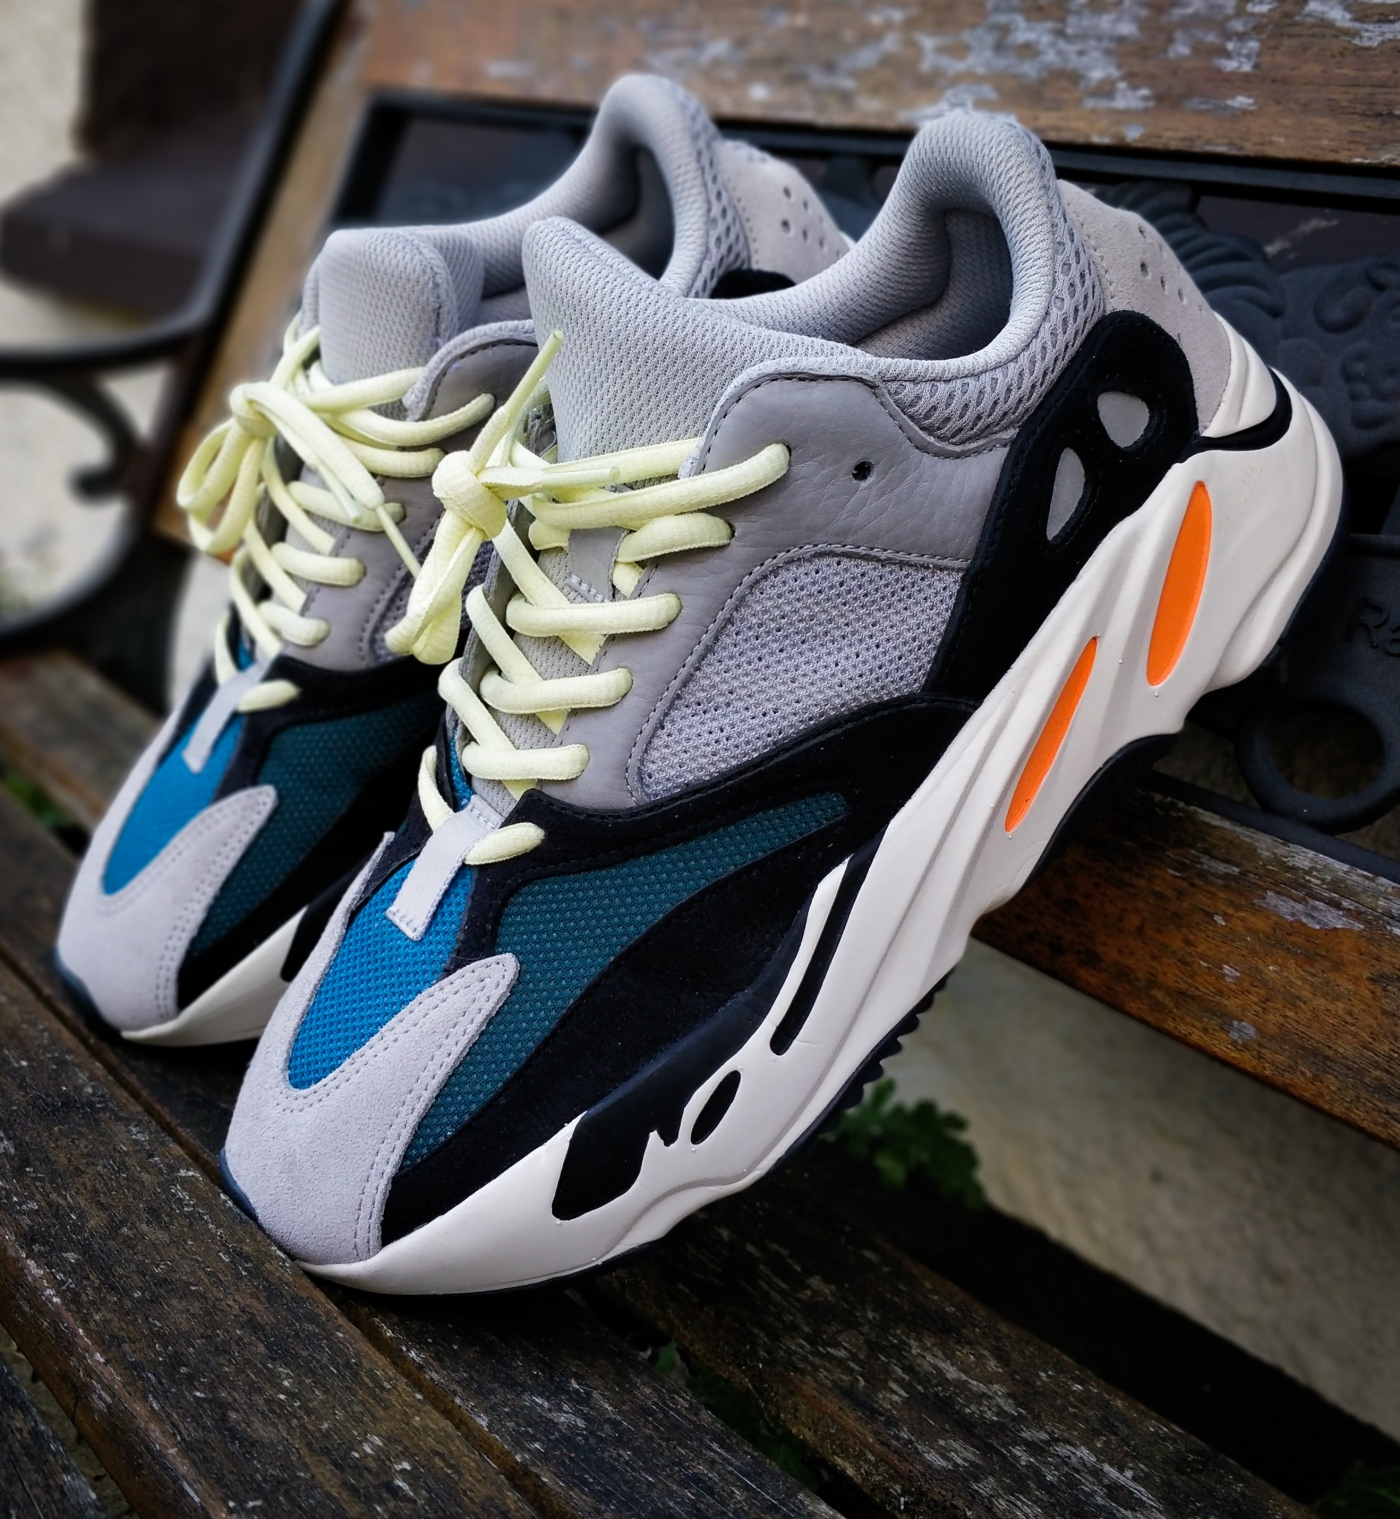 quality design bb6ba 62ad7 The Dad Of Dad Shoes? – Yeezy 700 'Wave Runner' Up Close ...